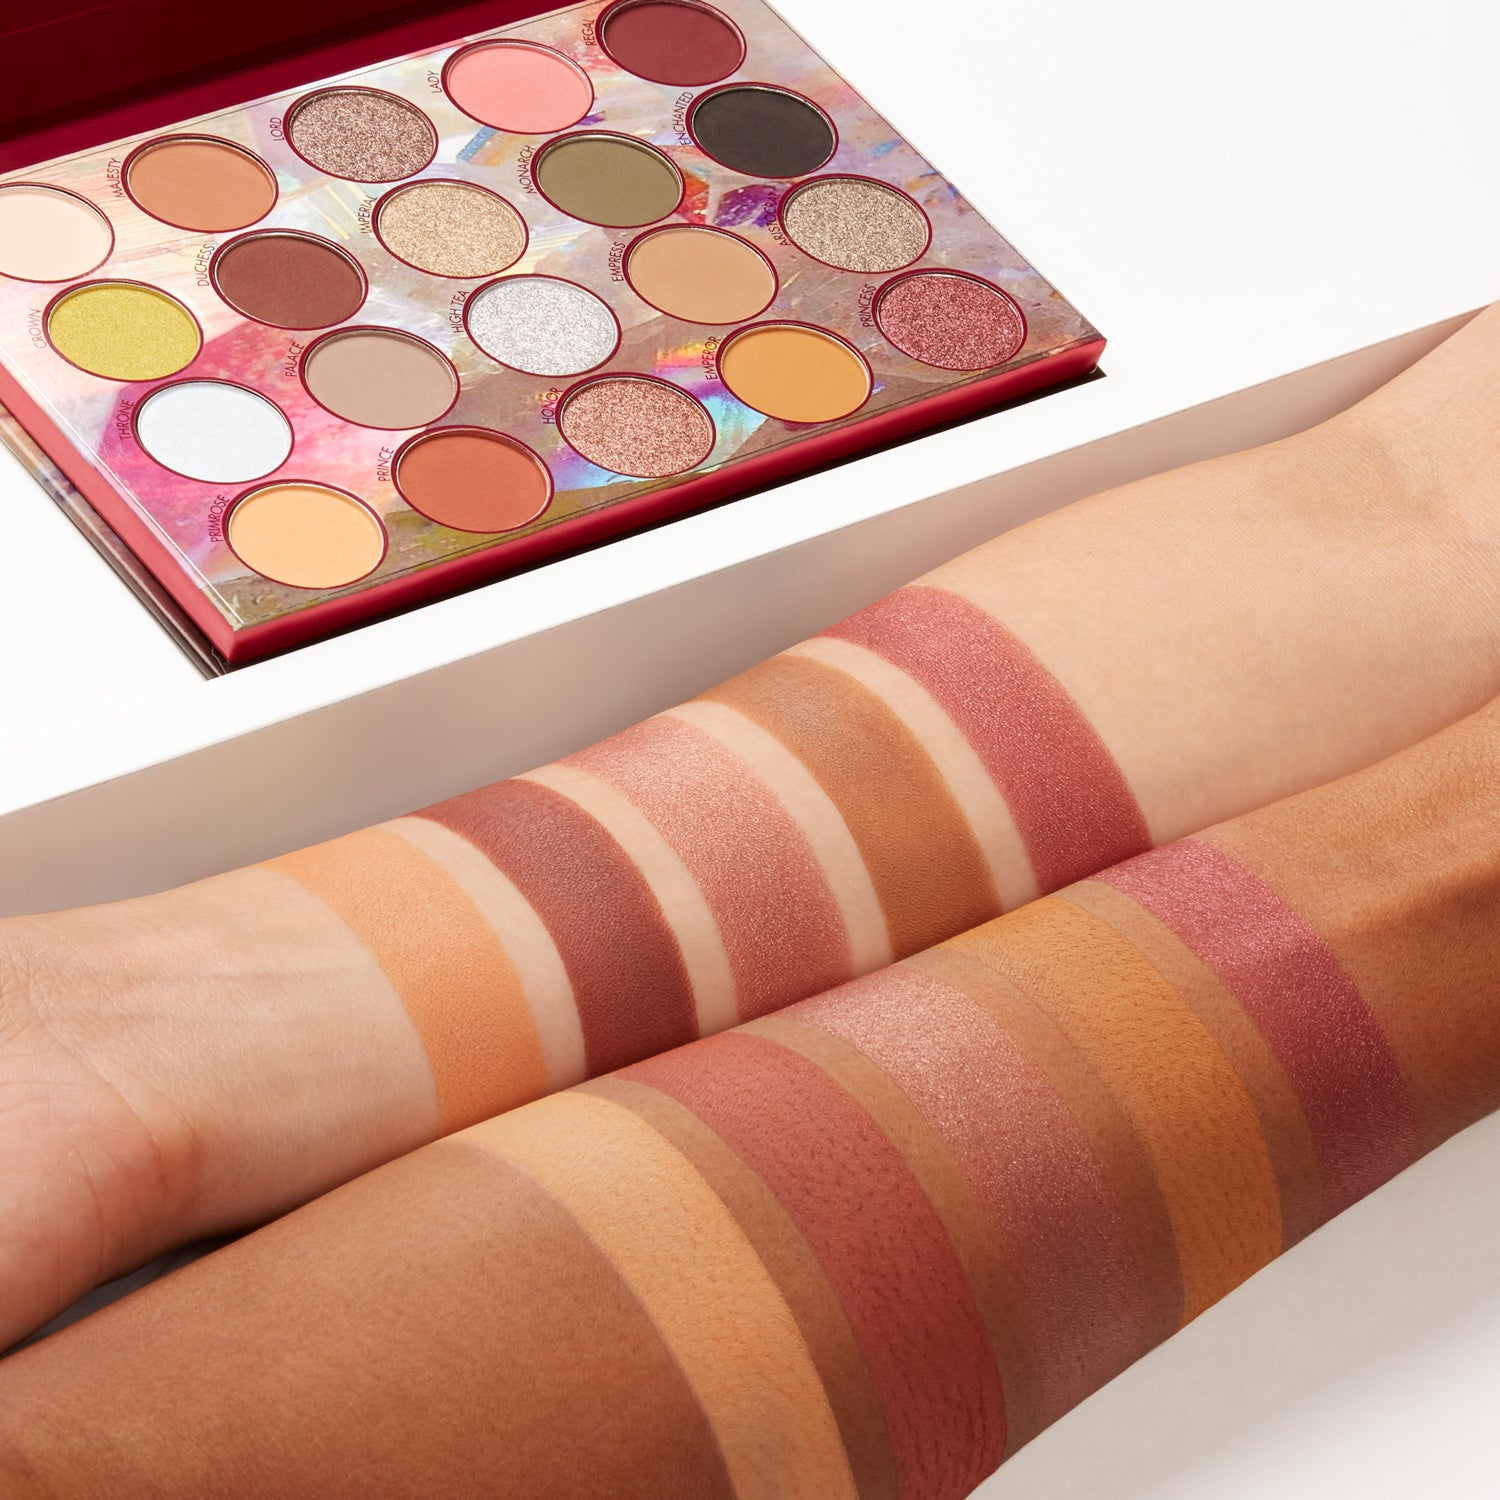 Desert Oasis 19 Color Shadow Highlighter Palette by BH Cosmetics #15